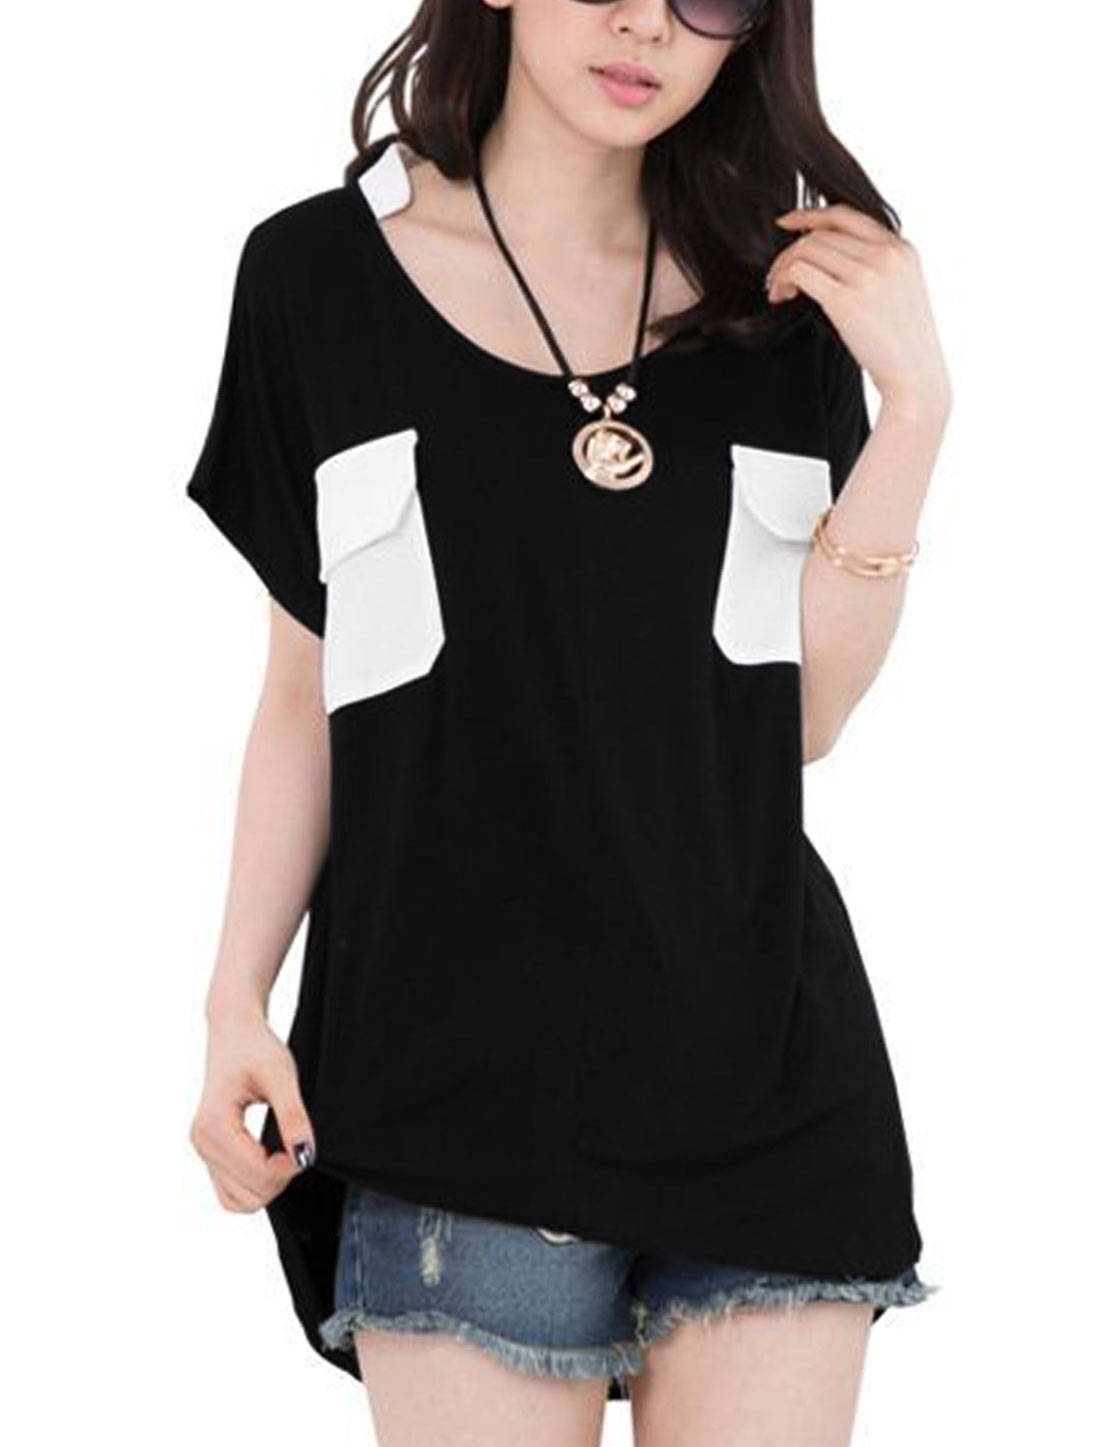 Ladies Convertible Collar Batwing Design Cozy Loose Fit Top Black XS